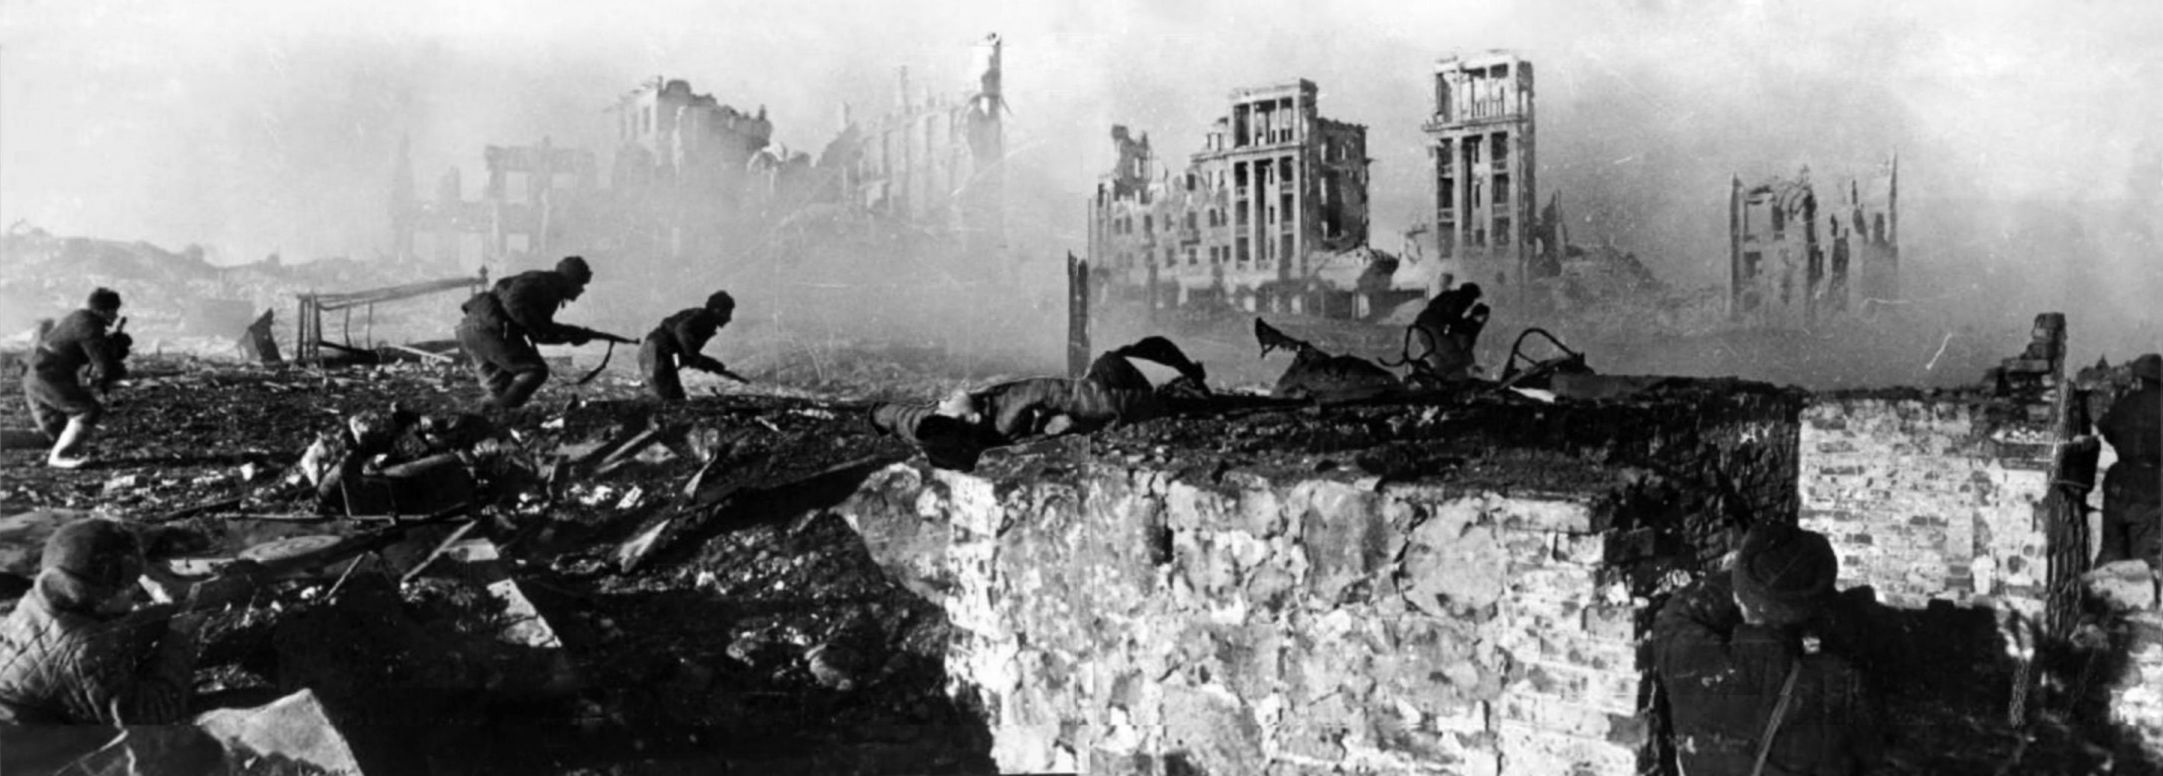 an overview of the infamous battle of stalingrad The battle for stalingrad by: william craig narrated by: david baker length: 13  hrs and 27 mins unabridged audiobook release date: 01-05-  10 of 10  people found this review helpful  the battle became famous for its sniper  warfare.